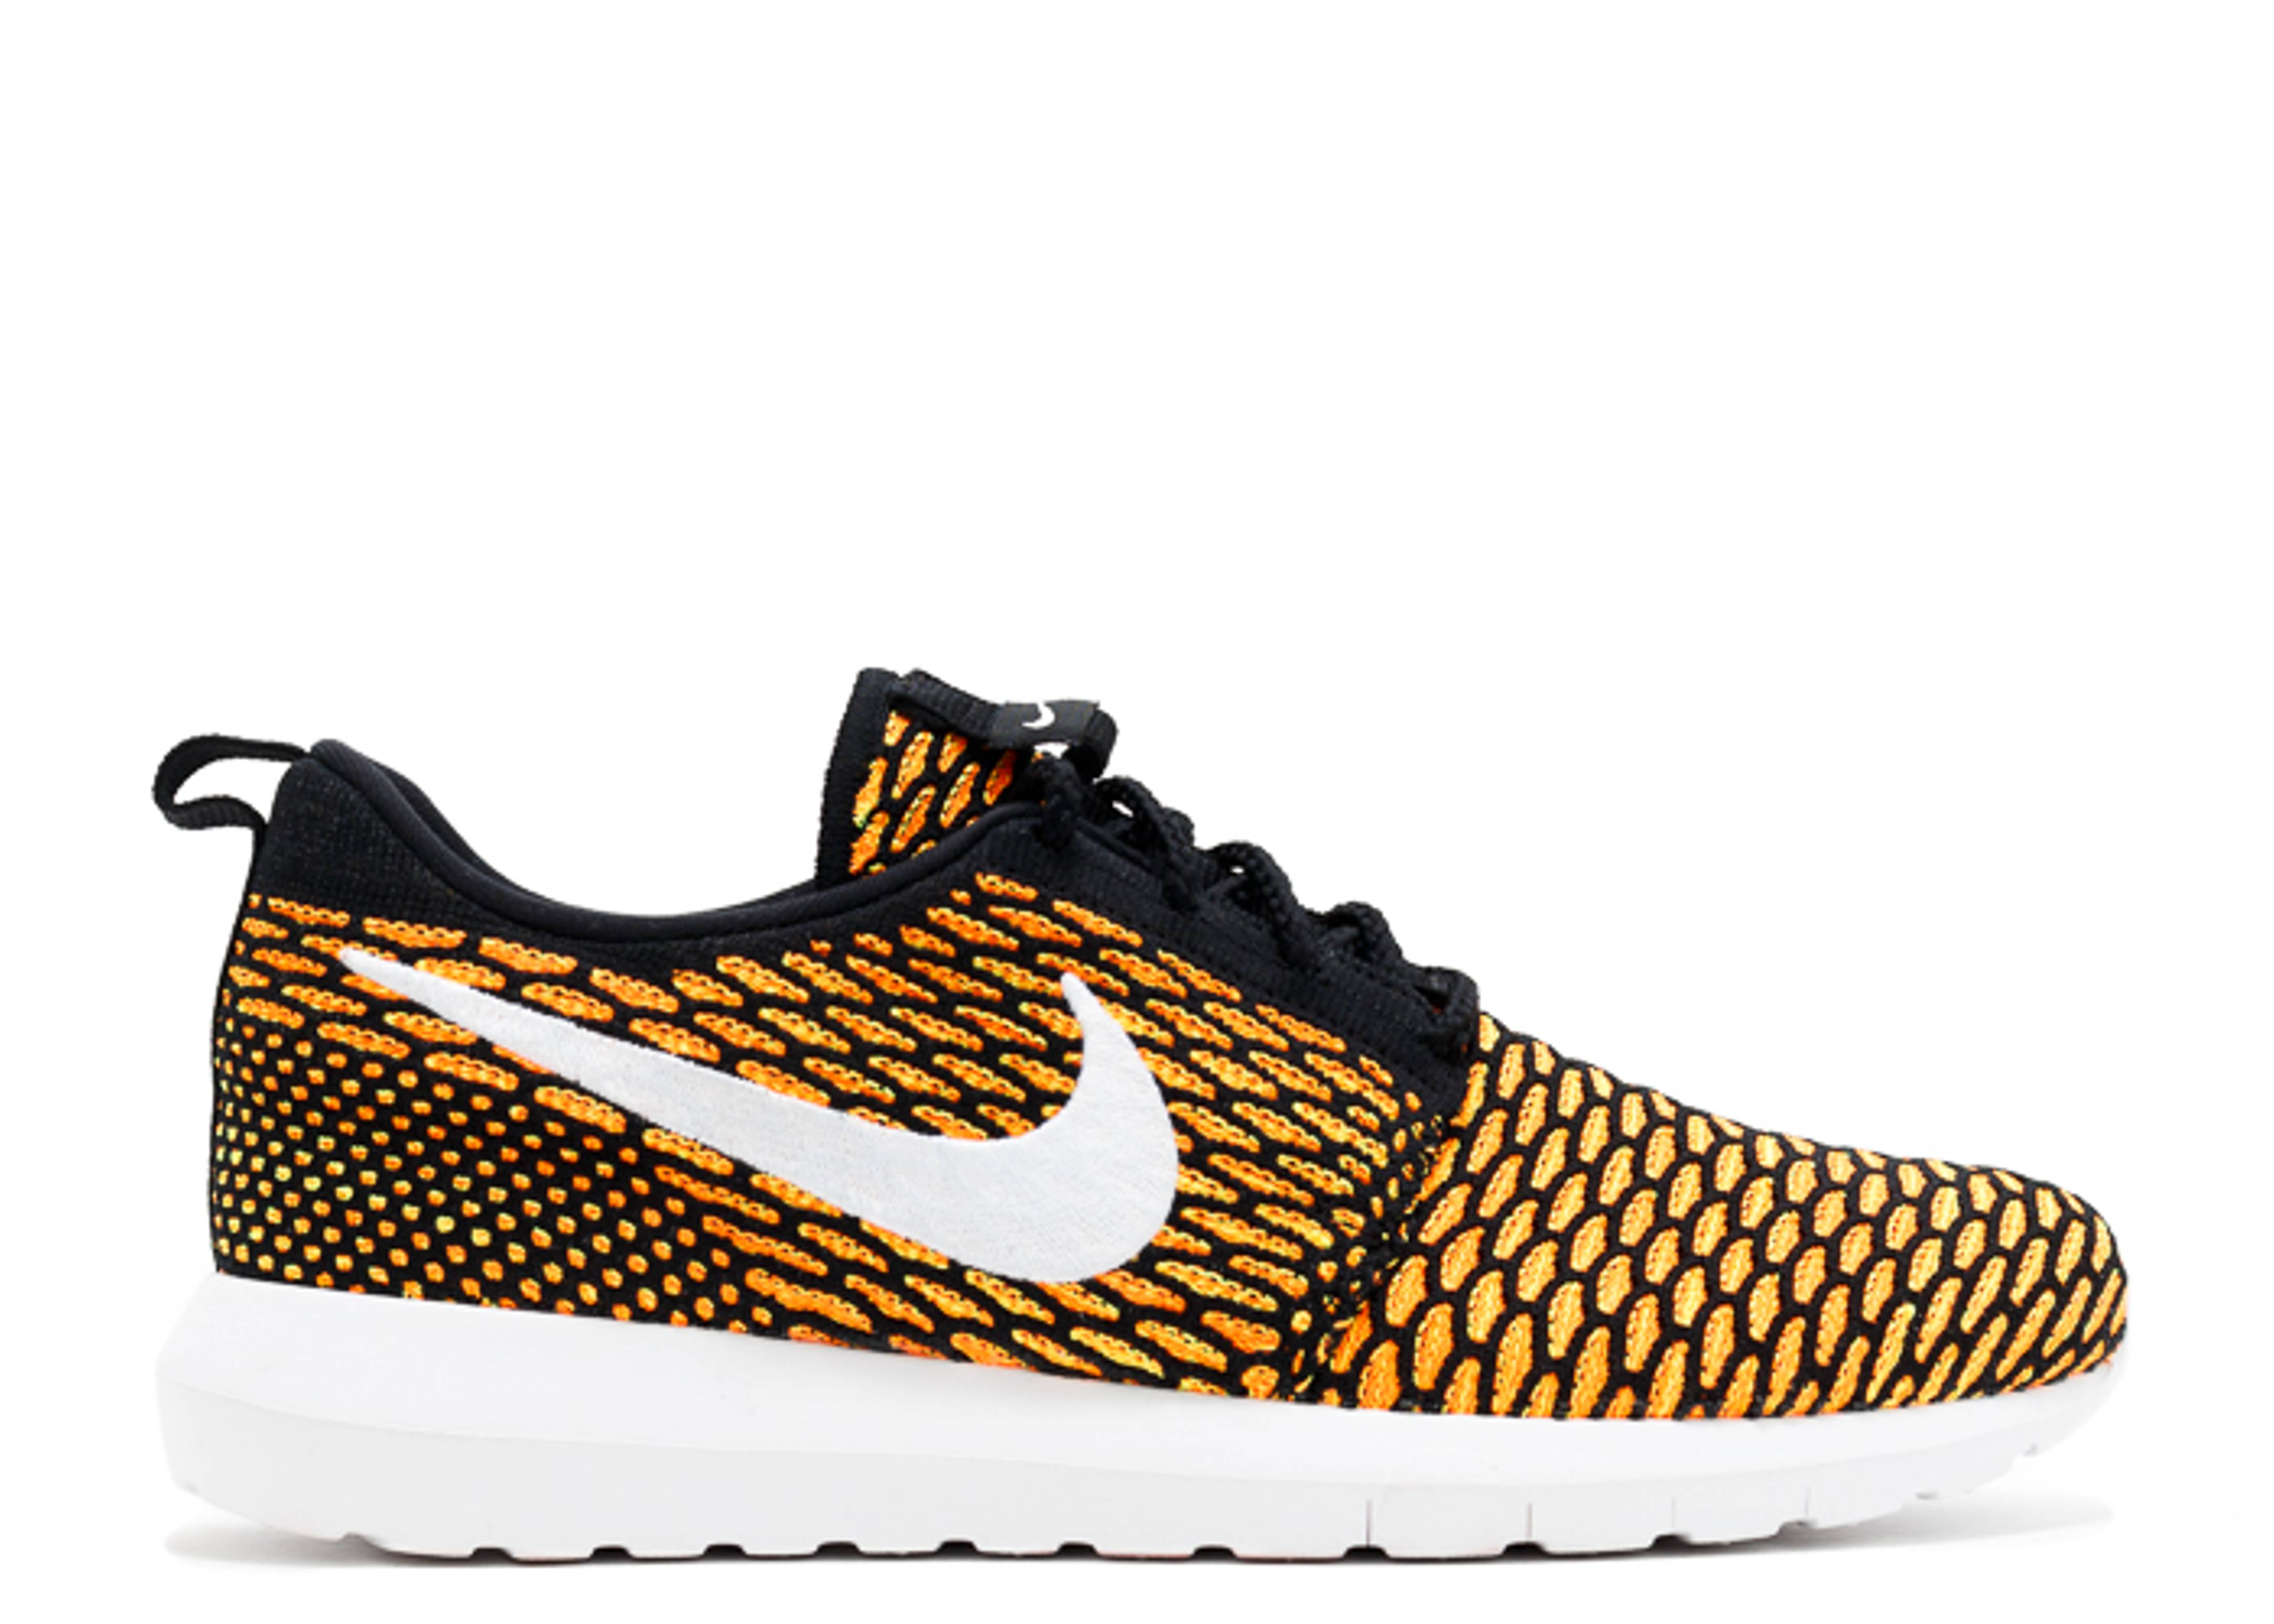 Roshe Nm Flyknit - Nike - 677243 018 - black white-total orange-volt ... 84f9425da